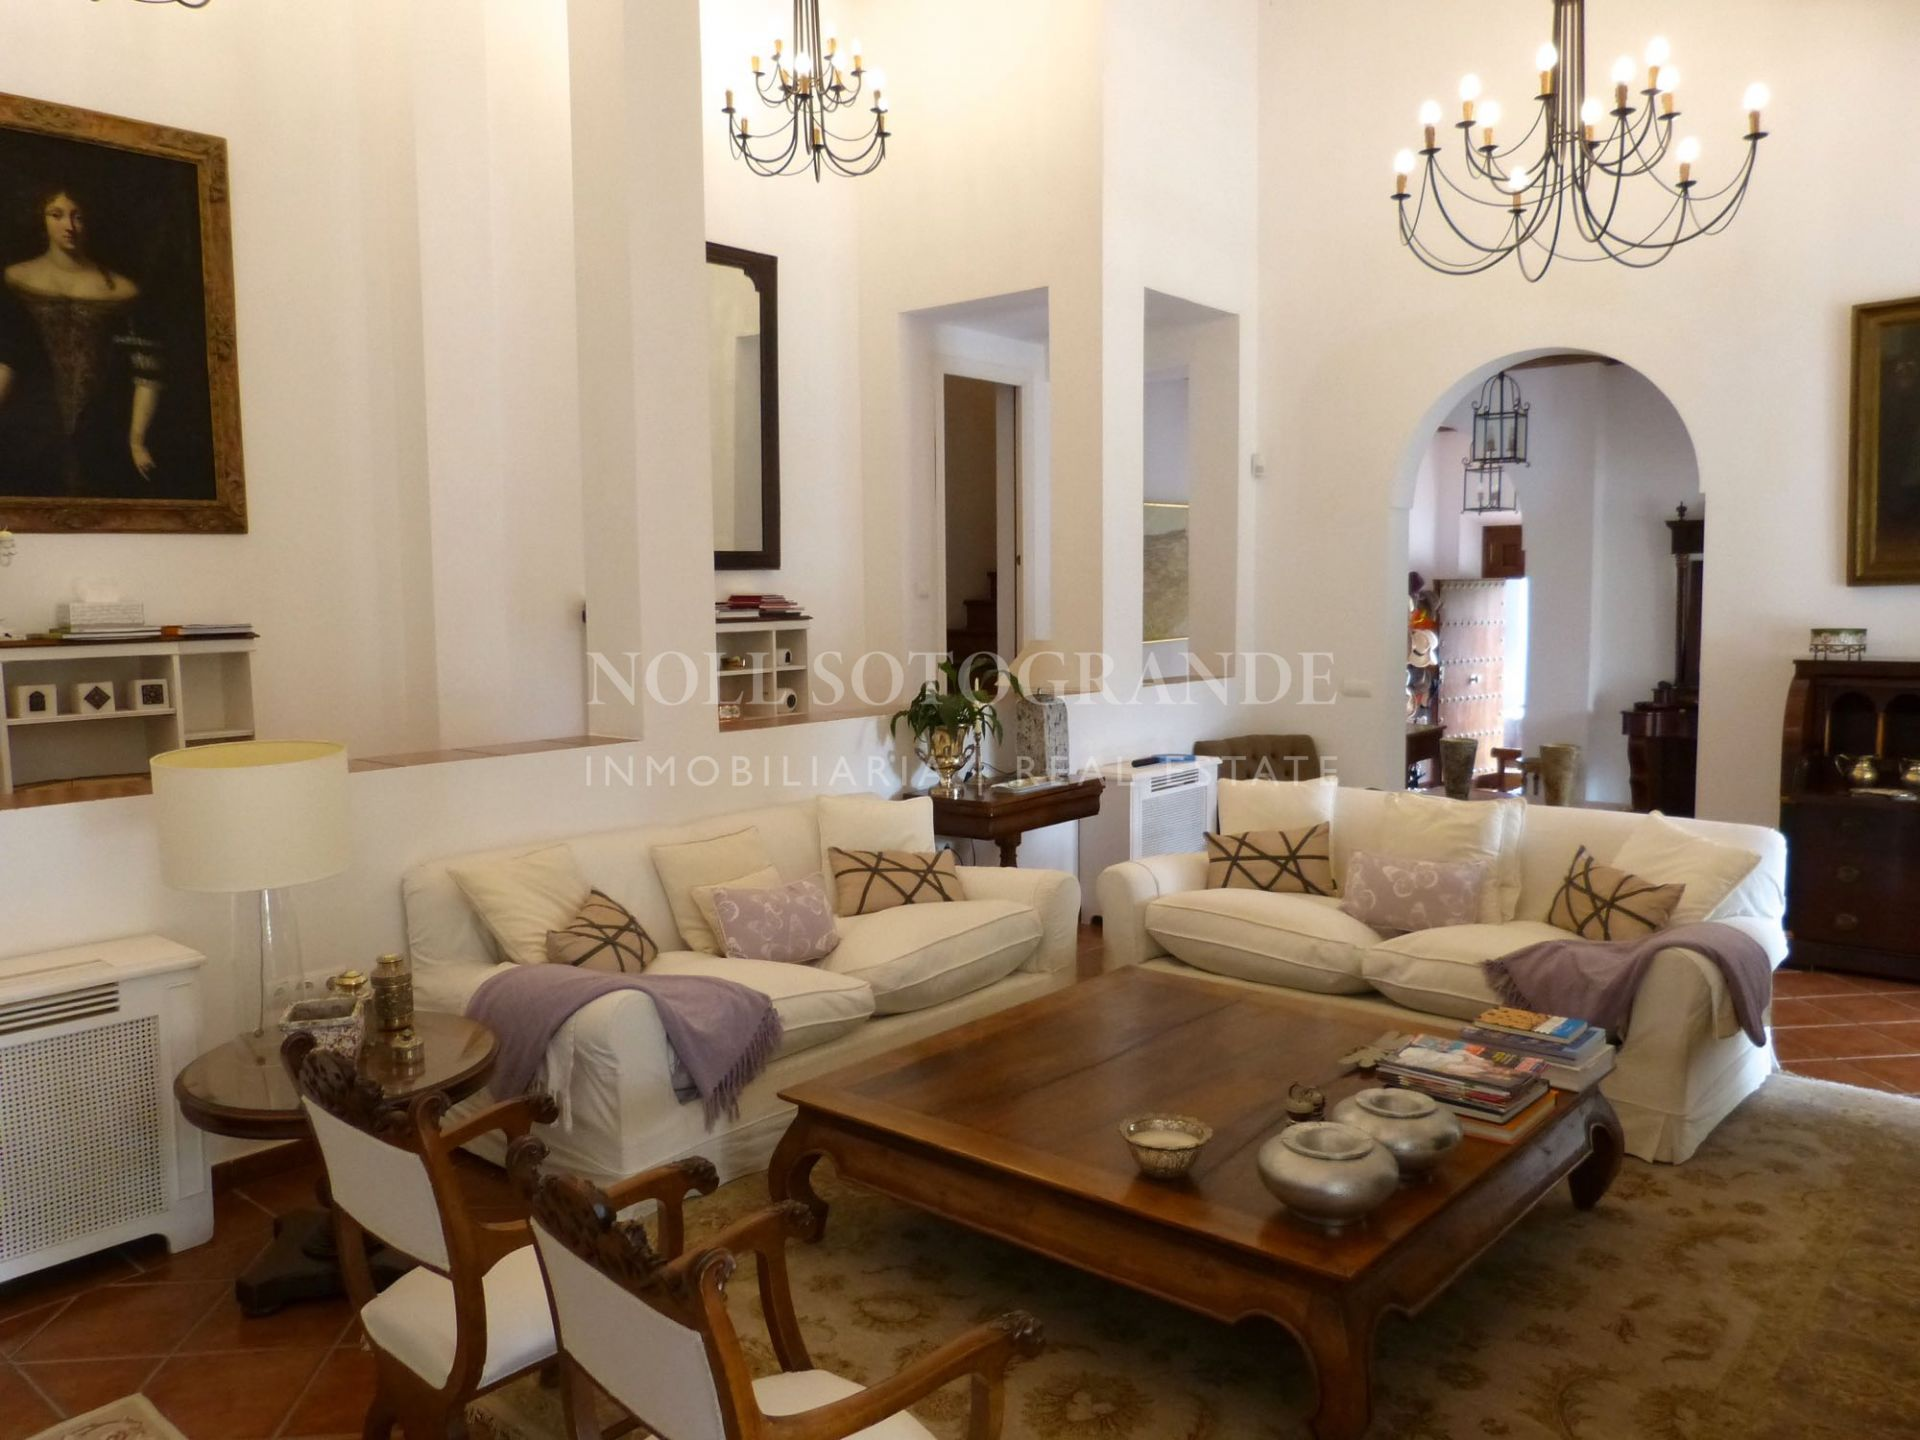 Charming traditional home for sale Sotogrande Costa